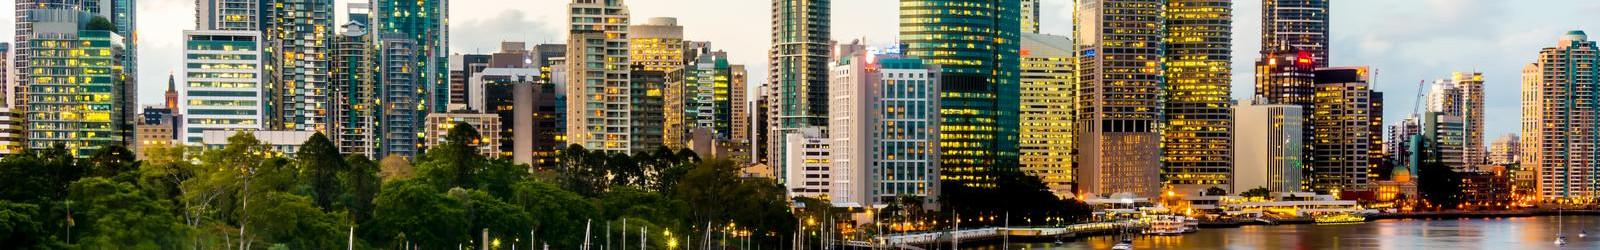 Therapists in Brisbane, Queensland: psychologists, counselors, and mental health specialists